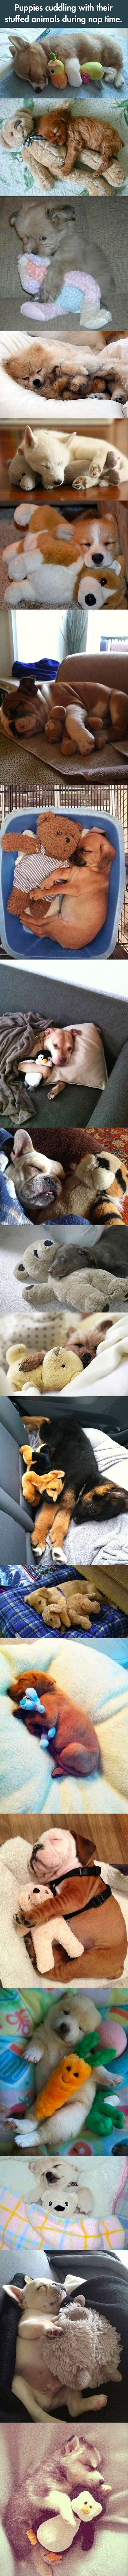 One of the cutest ever.: Nap Time, Stuffed Animals, Cuteness Overload, Pet, Puppys, Stuffed Toy, Dog, Puppies Cuddling